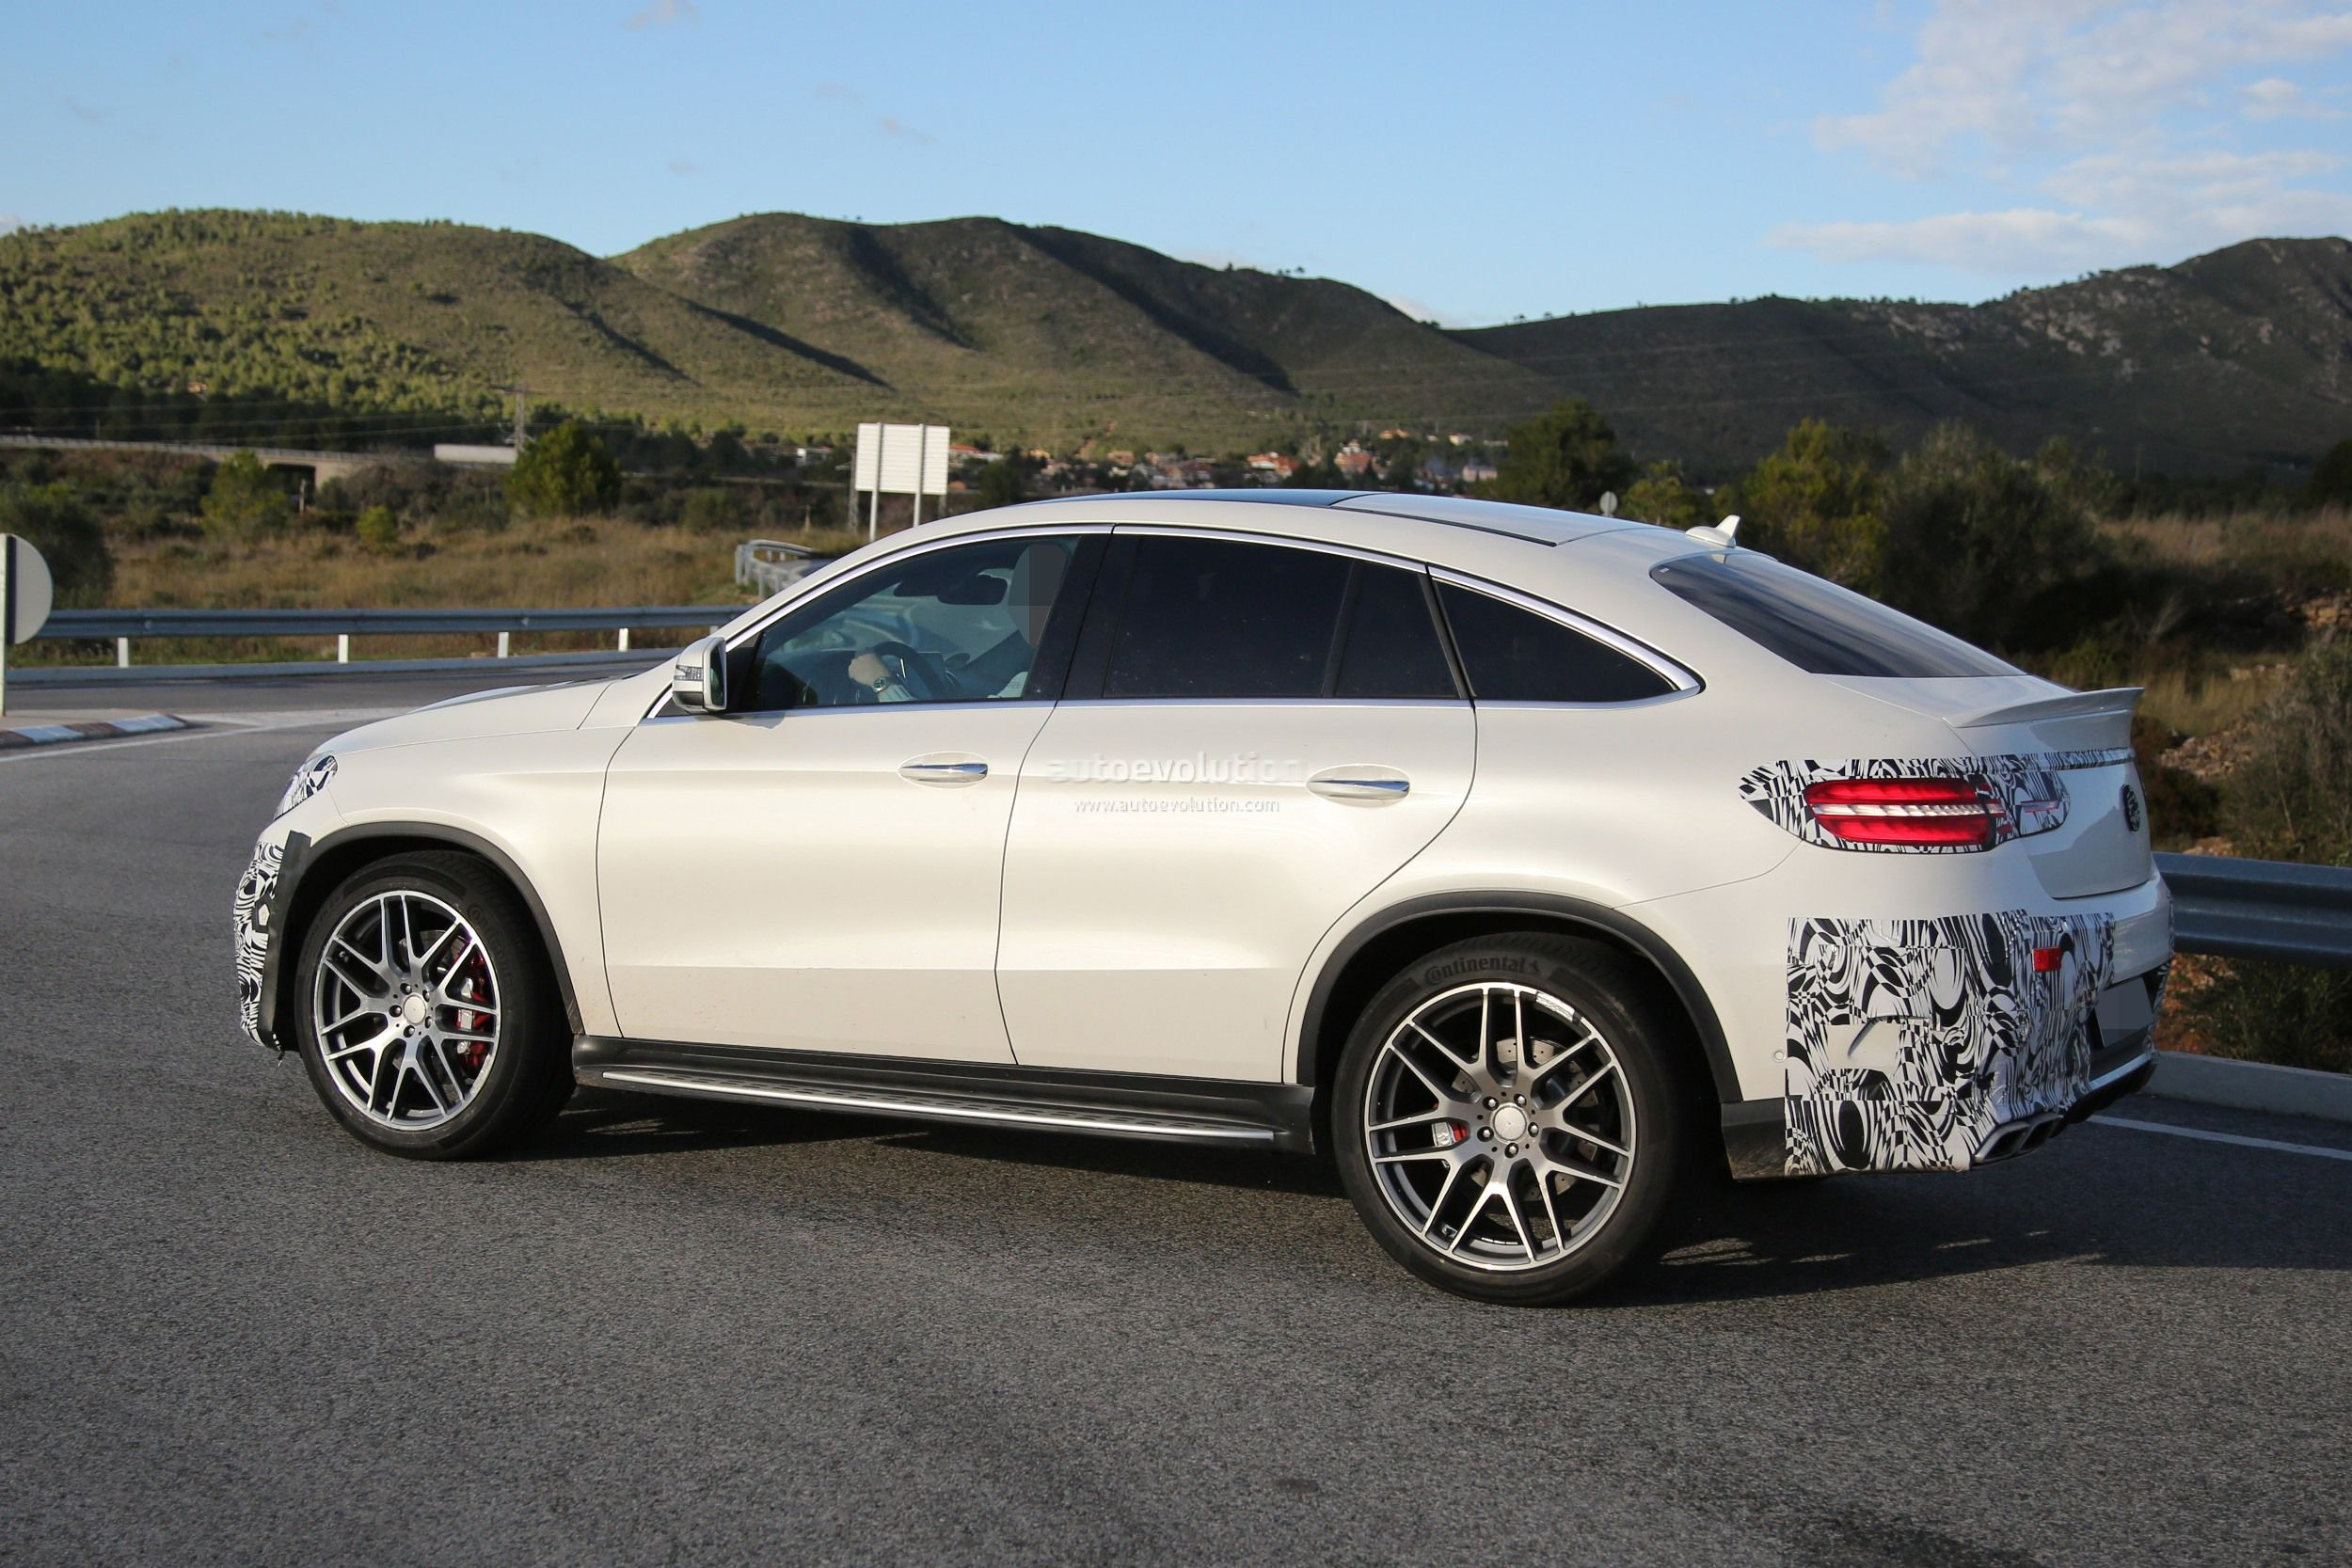 2018 Mercedes Benz GLE Coupe photo - 3